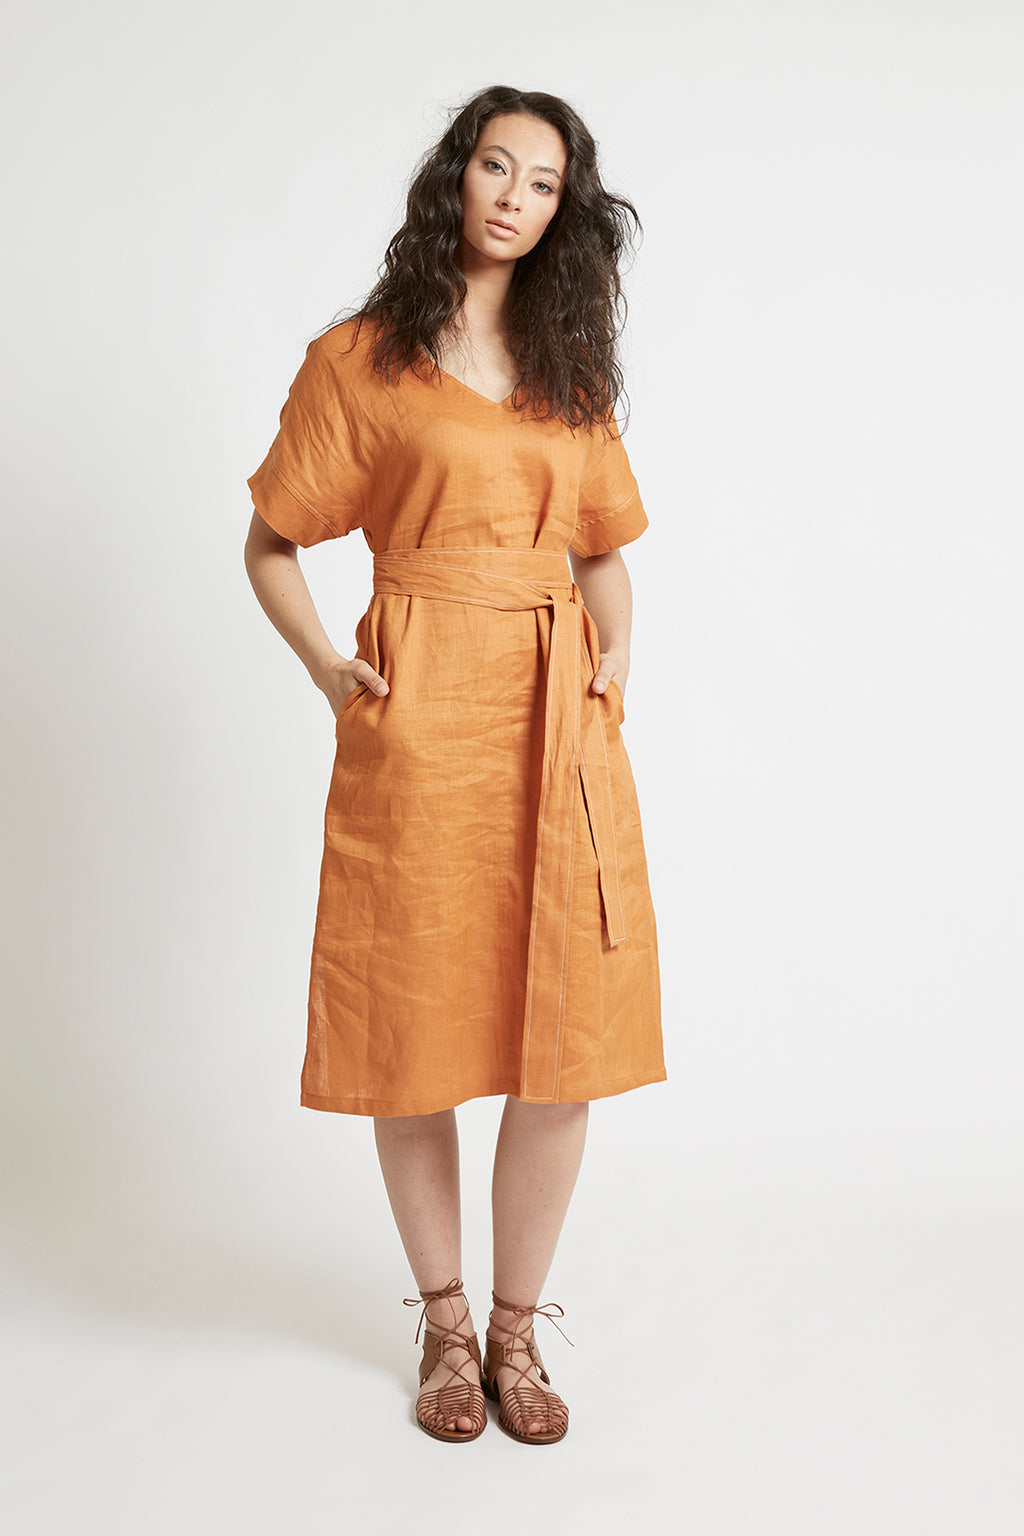 Orange Linen Kimono Sleeve Dress Dresses The Fashion Advocate ethical Australian fashion designer boutique Melbourne sustainable clothes